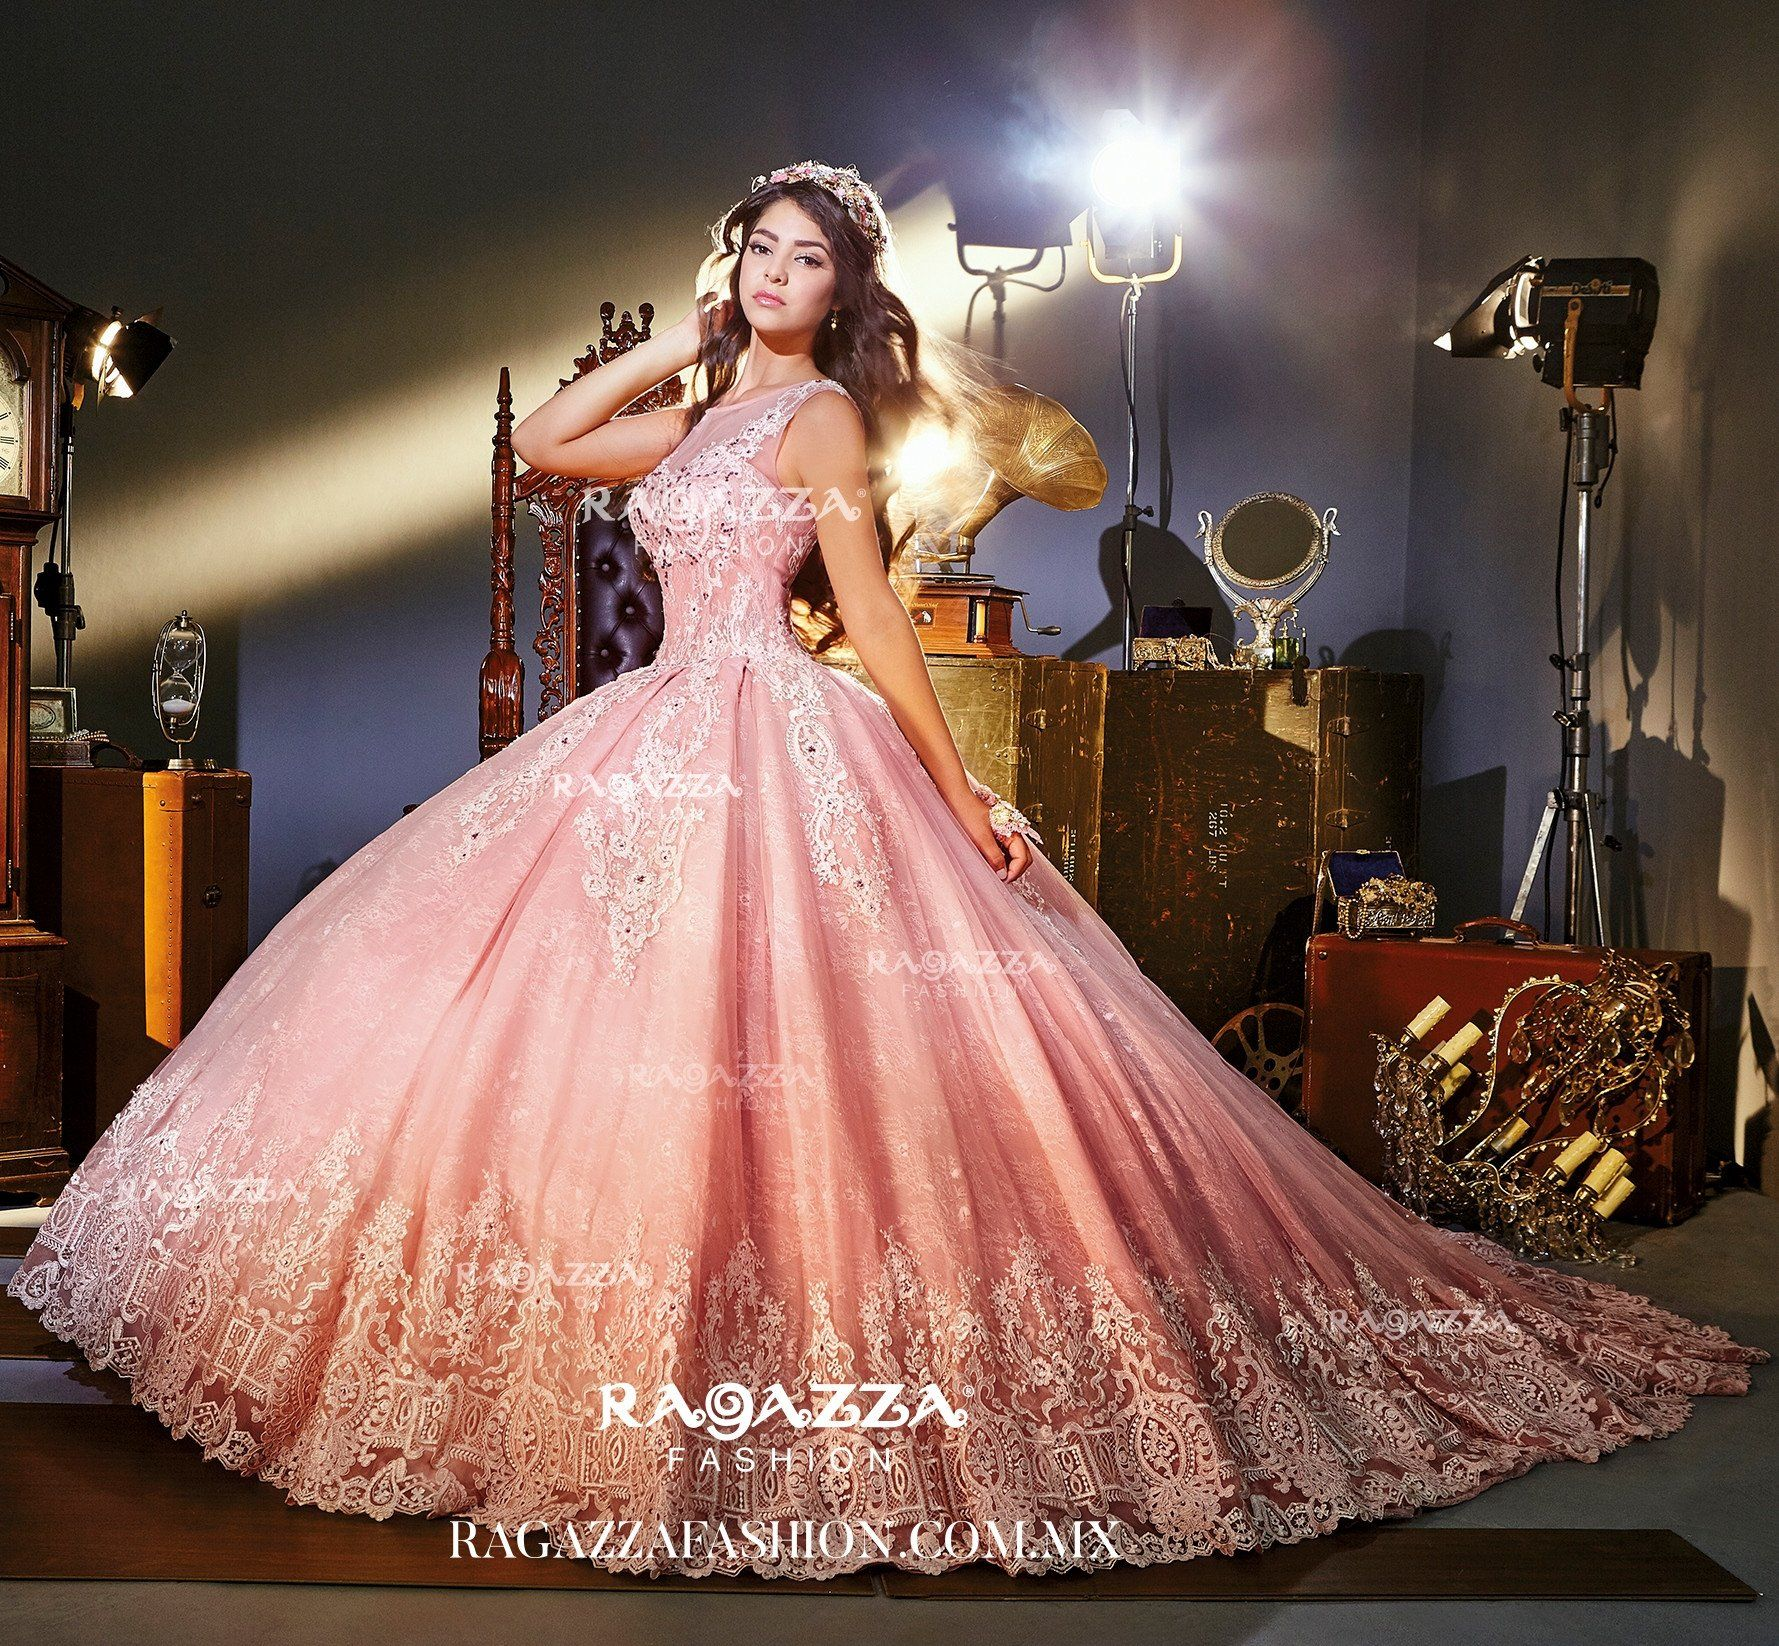 Pink Illusion Quinceanera Dress By Ragazza Fashion Style V73 373 En 2019 Quincea 241 Era 15 A 241 Os